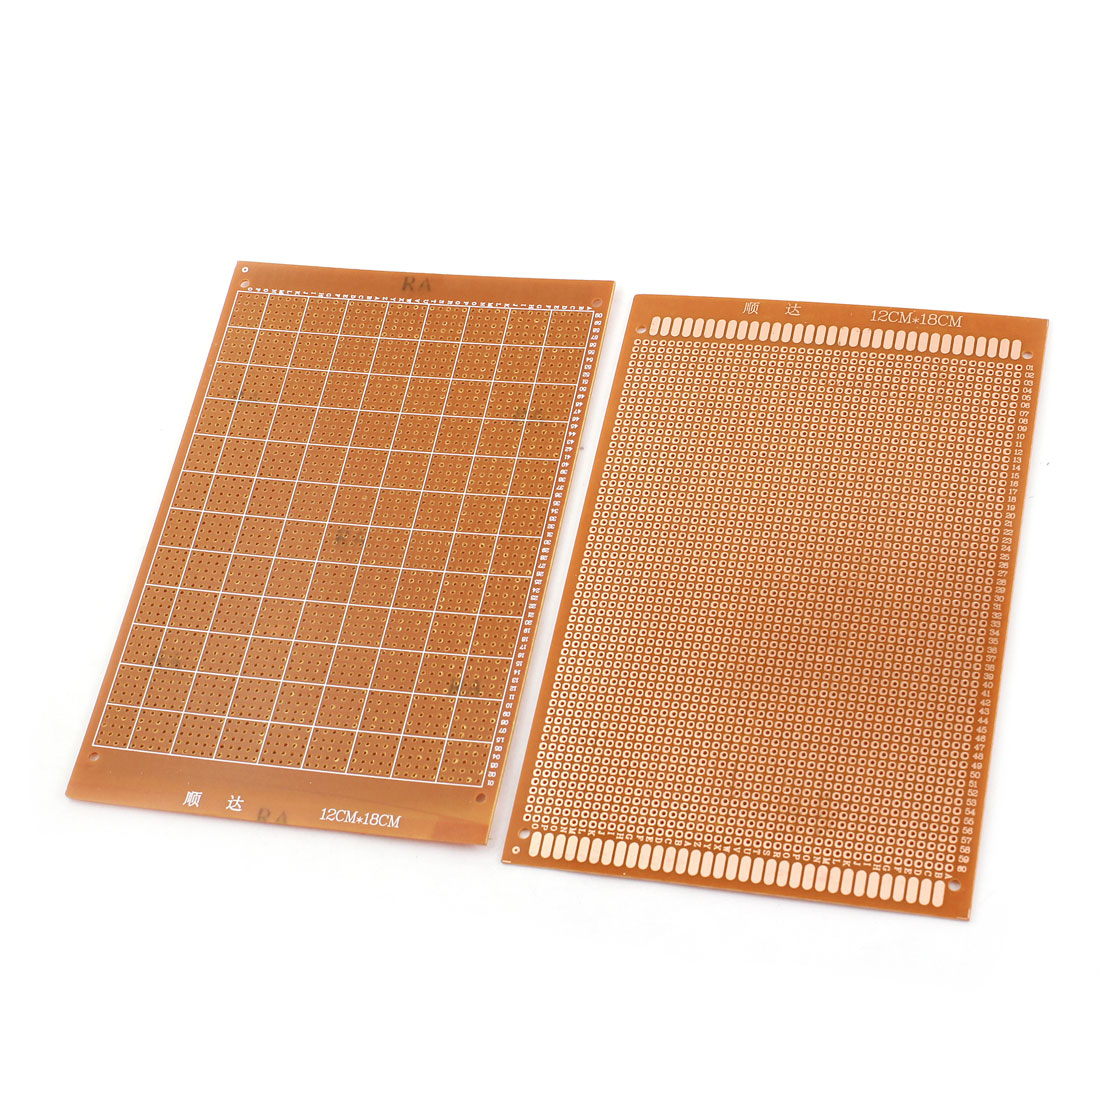 2 Pcs 12cm x 18cm Single Side Universal Prototype PCB Print Circuit Board Breadboard 2.54mm Spacing